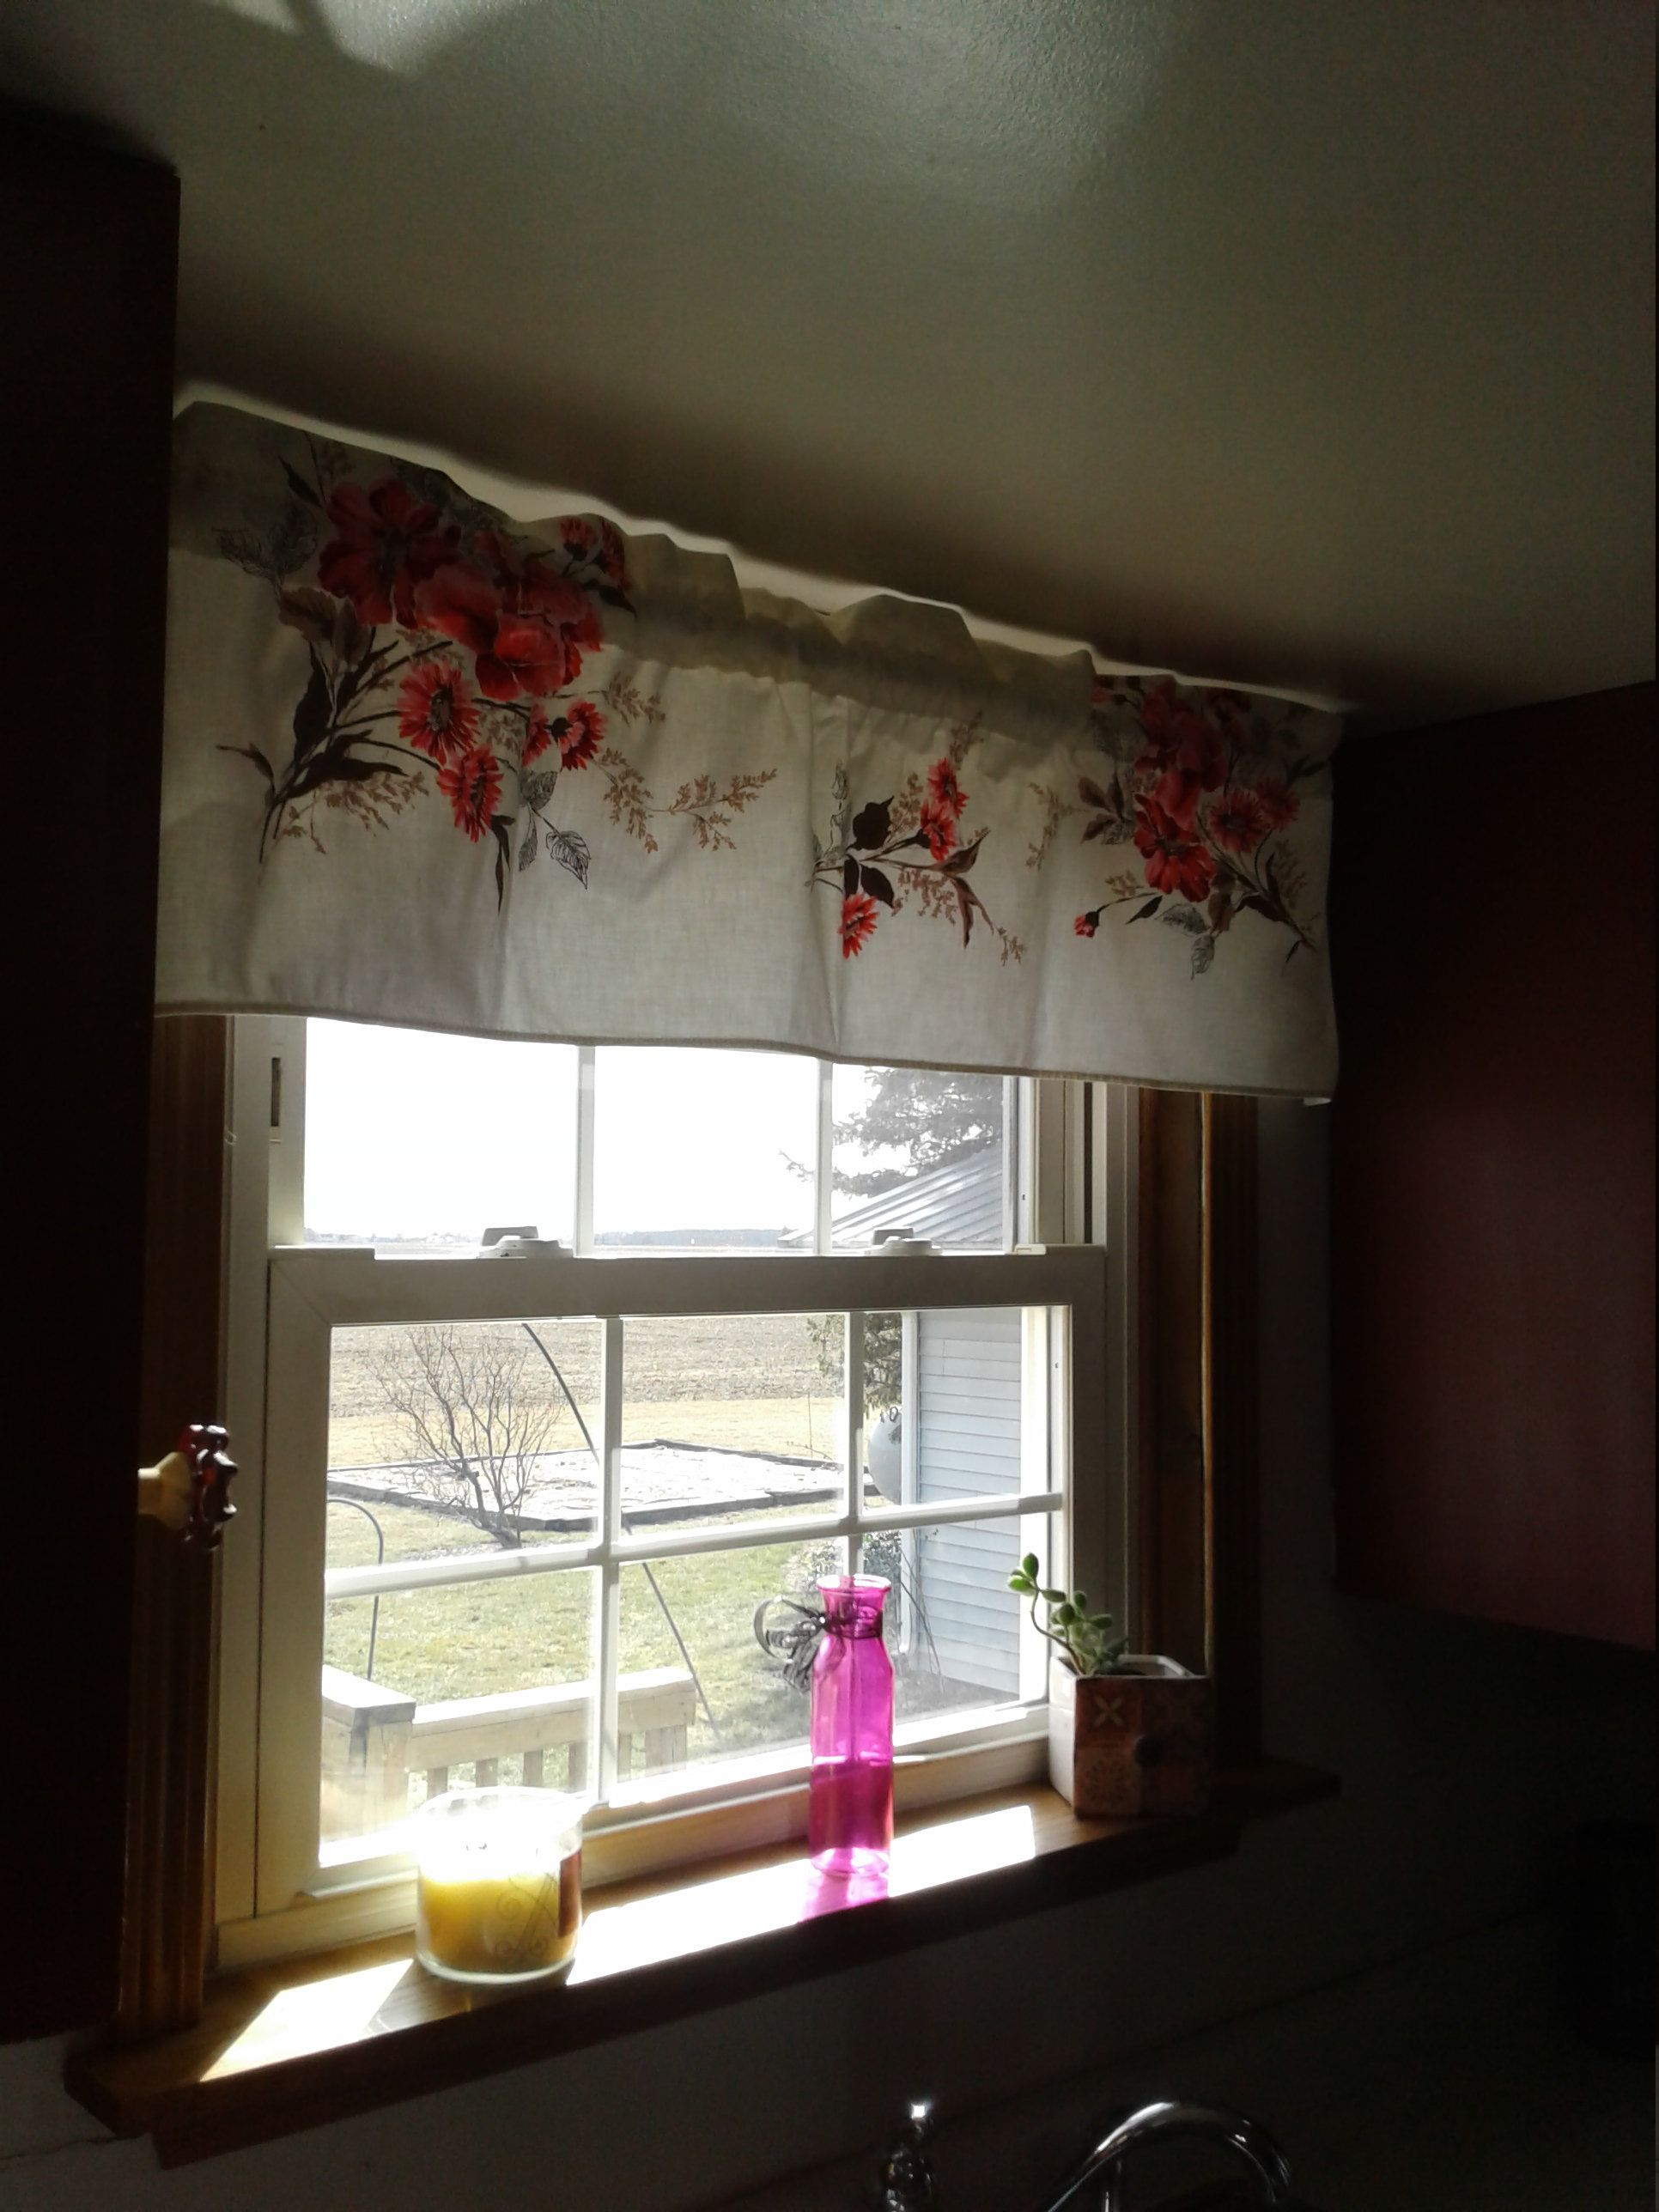 Retro valance curtain kitchen window covering vintage fabric red